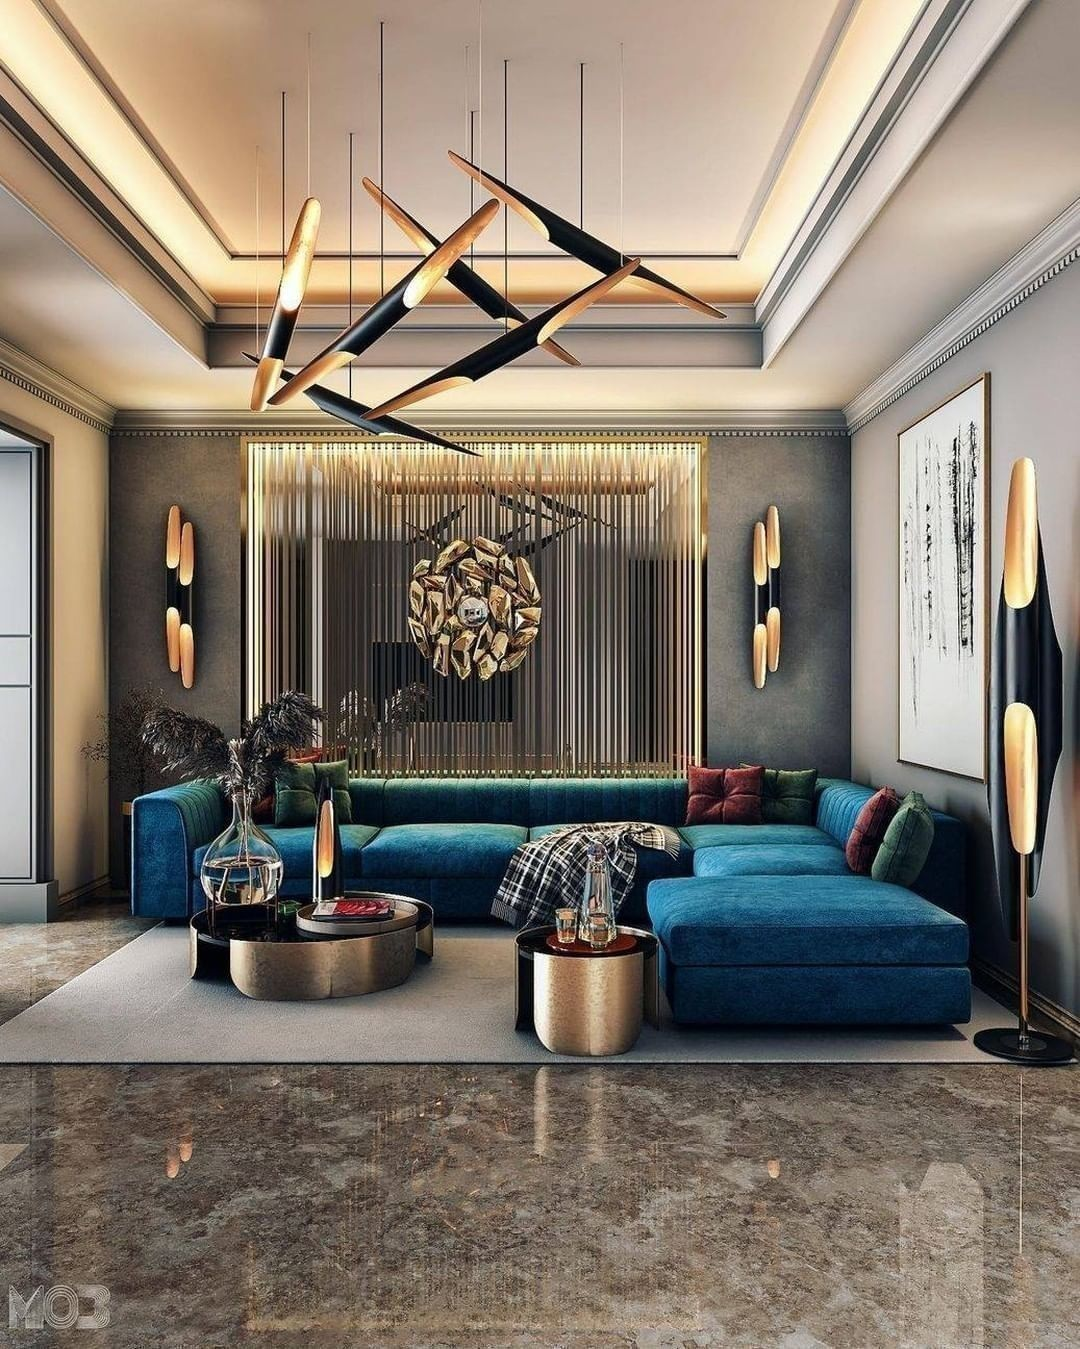 Room by Room's Astonishing Inspirations by PullCast